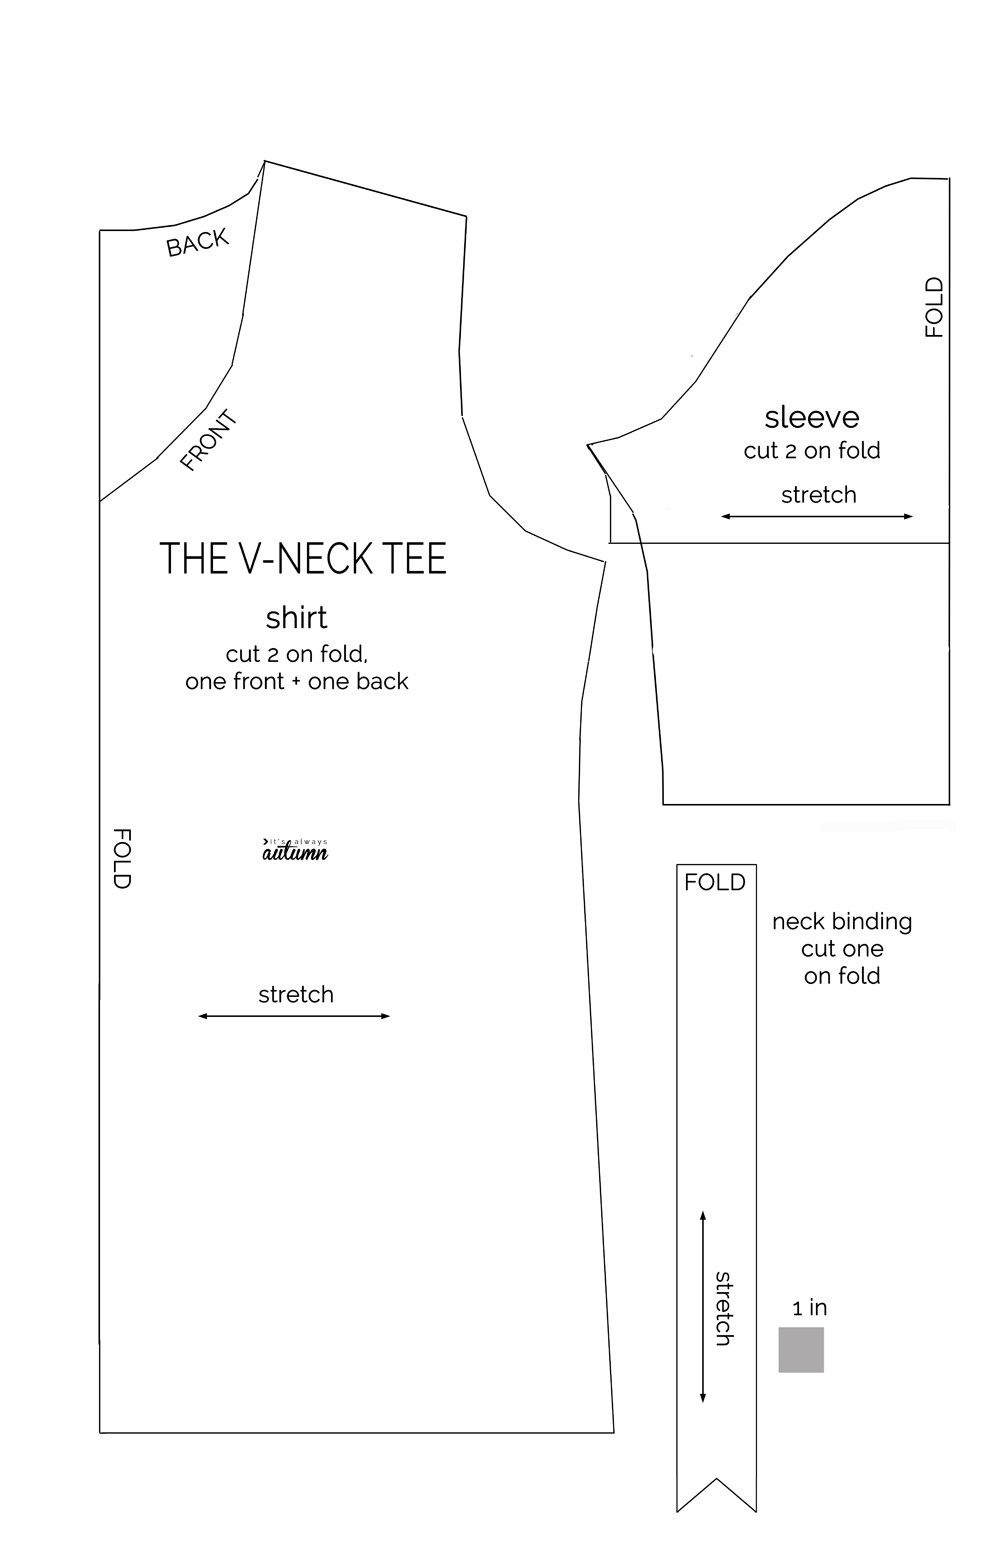 The V-neck tee sewing pattern diagram